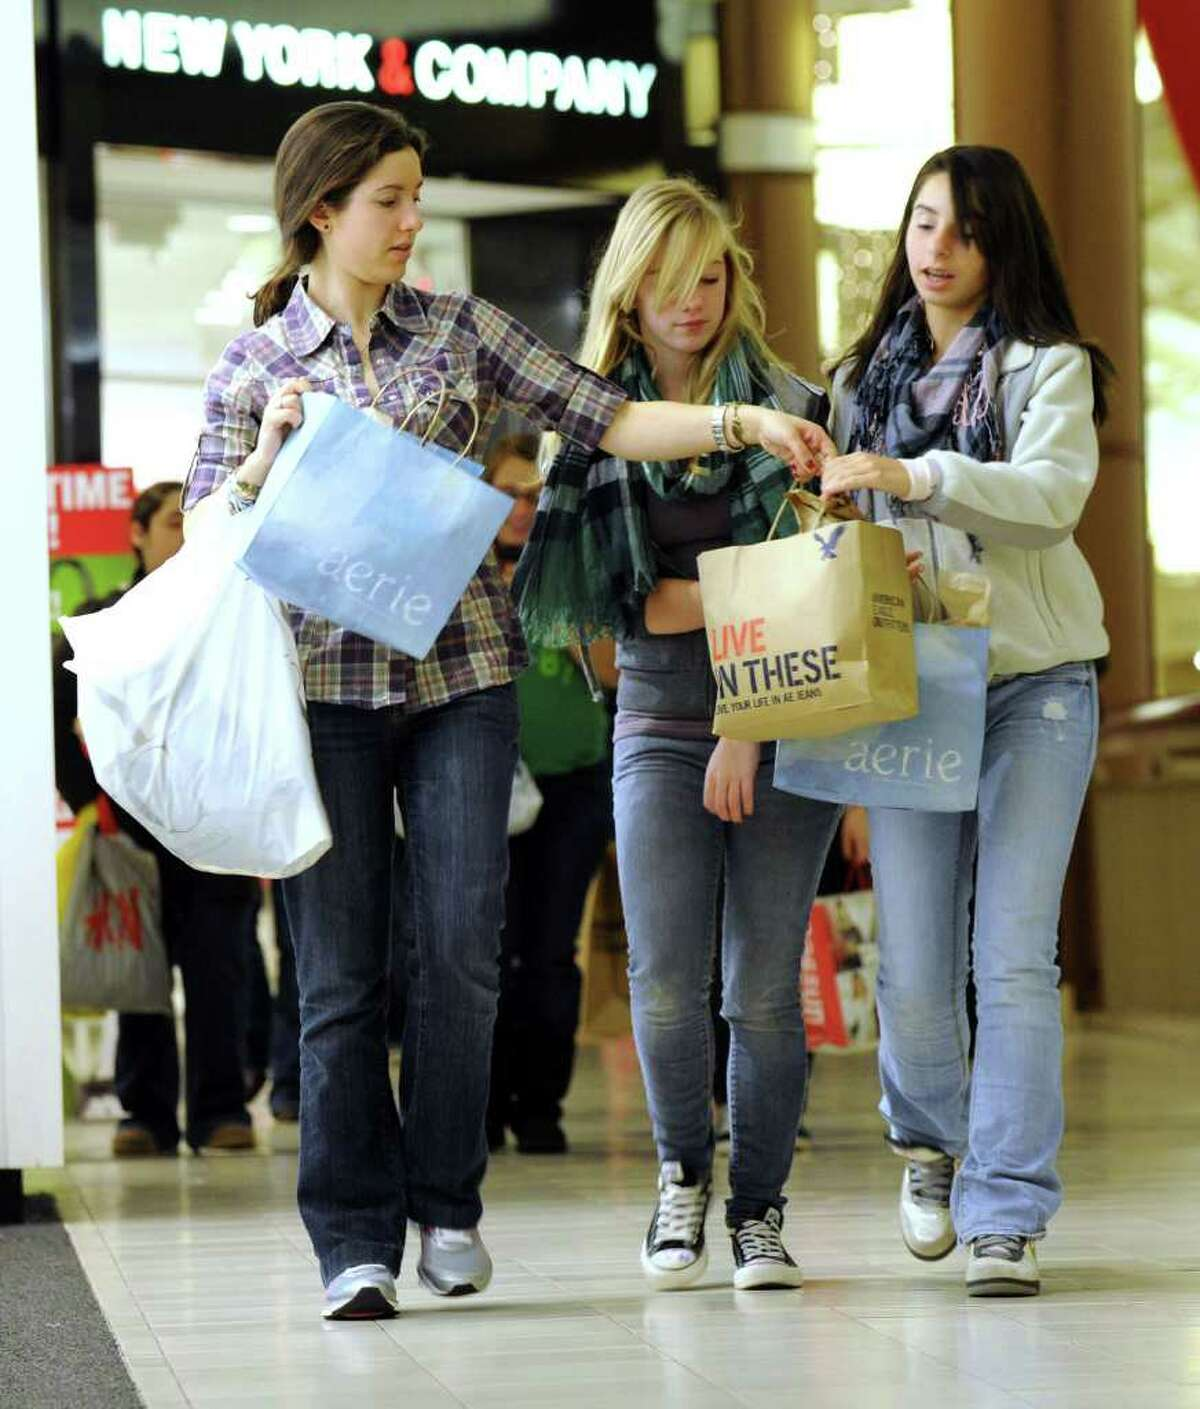 Shoppers arrived early to the Danbury Fair Mall for Black Friday bargain shopping, Nov. 26, 2010.